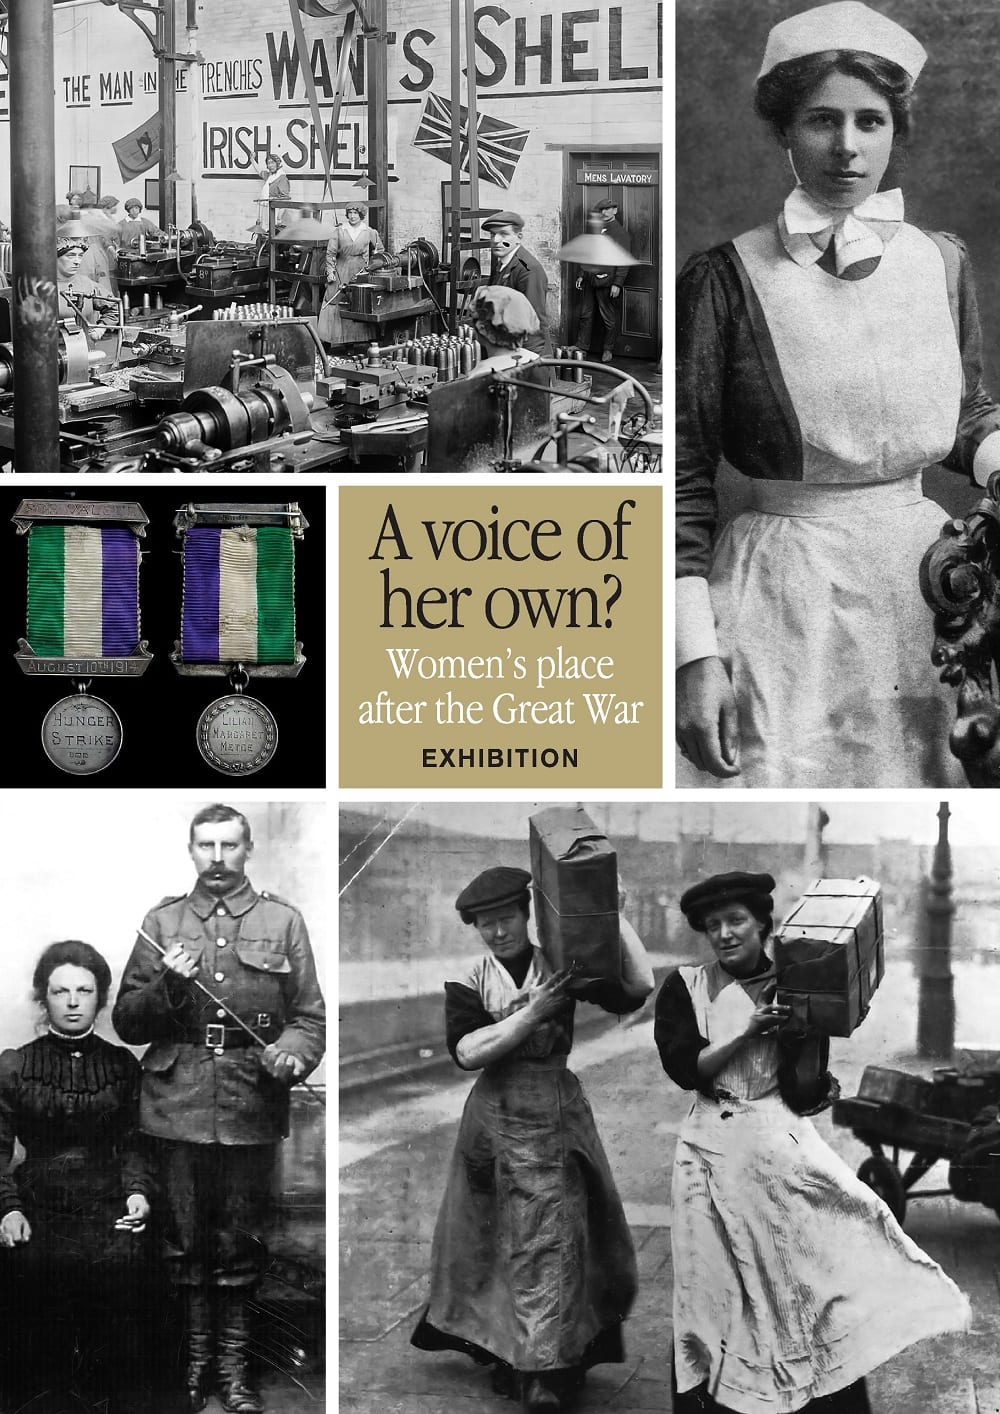 A women's place after the Great War Exhibition